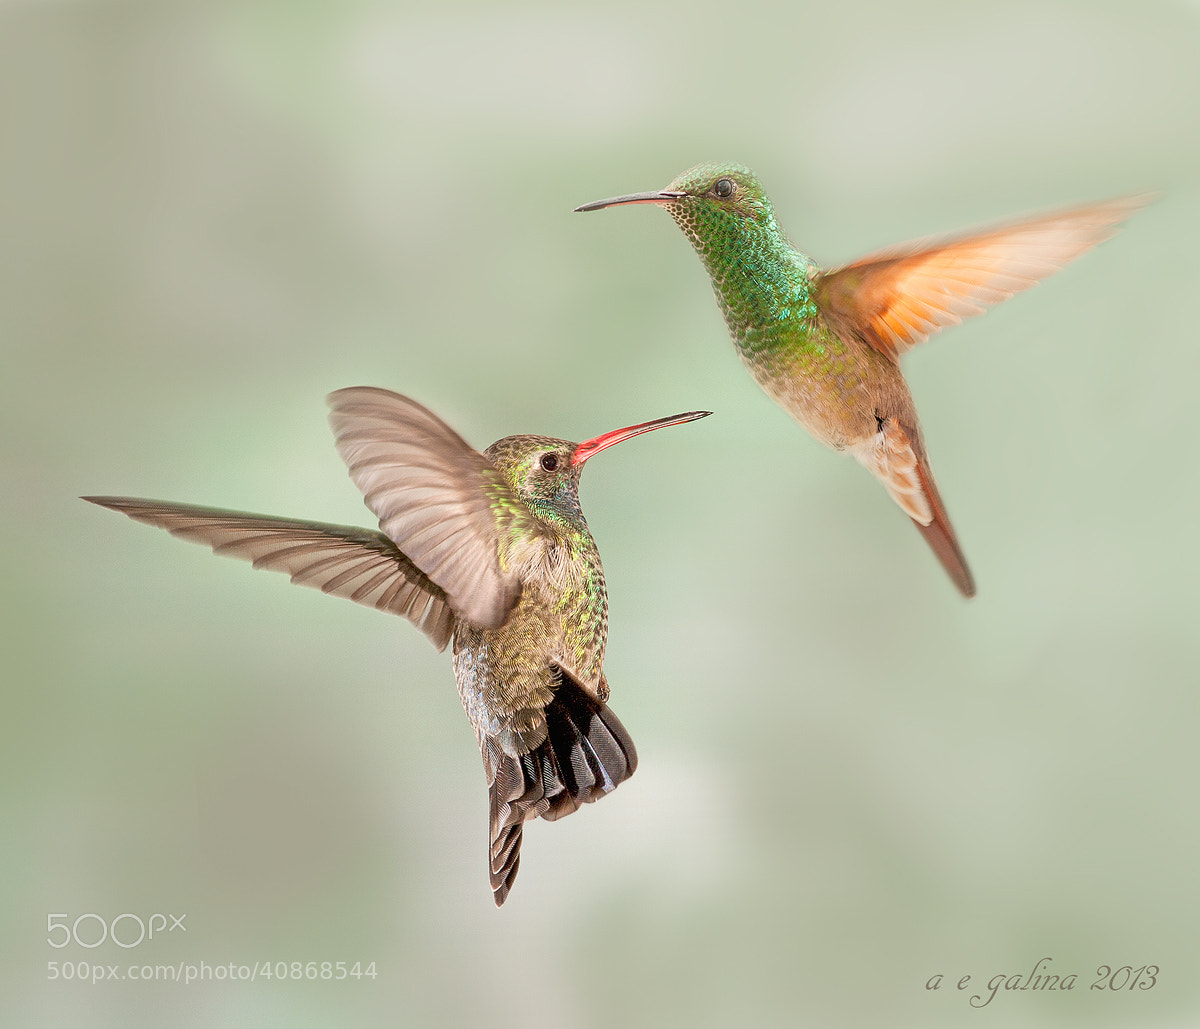 Photograph PELEA by Alfonso Emmanuel Galina on 500px